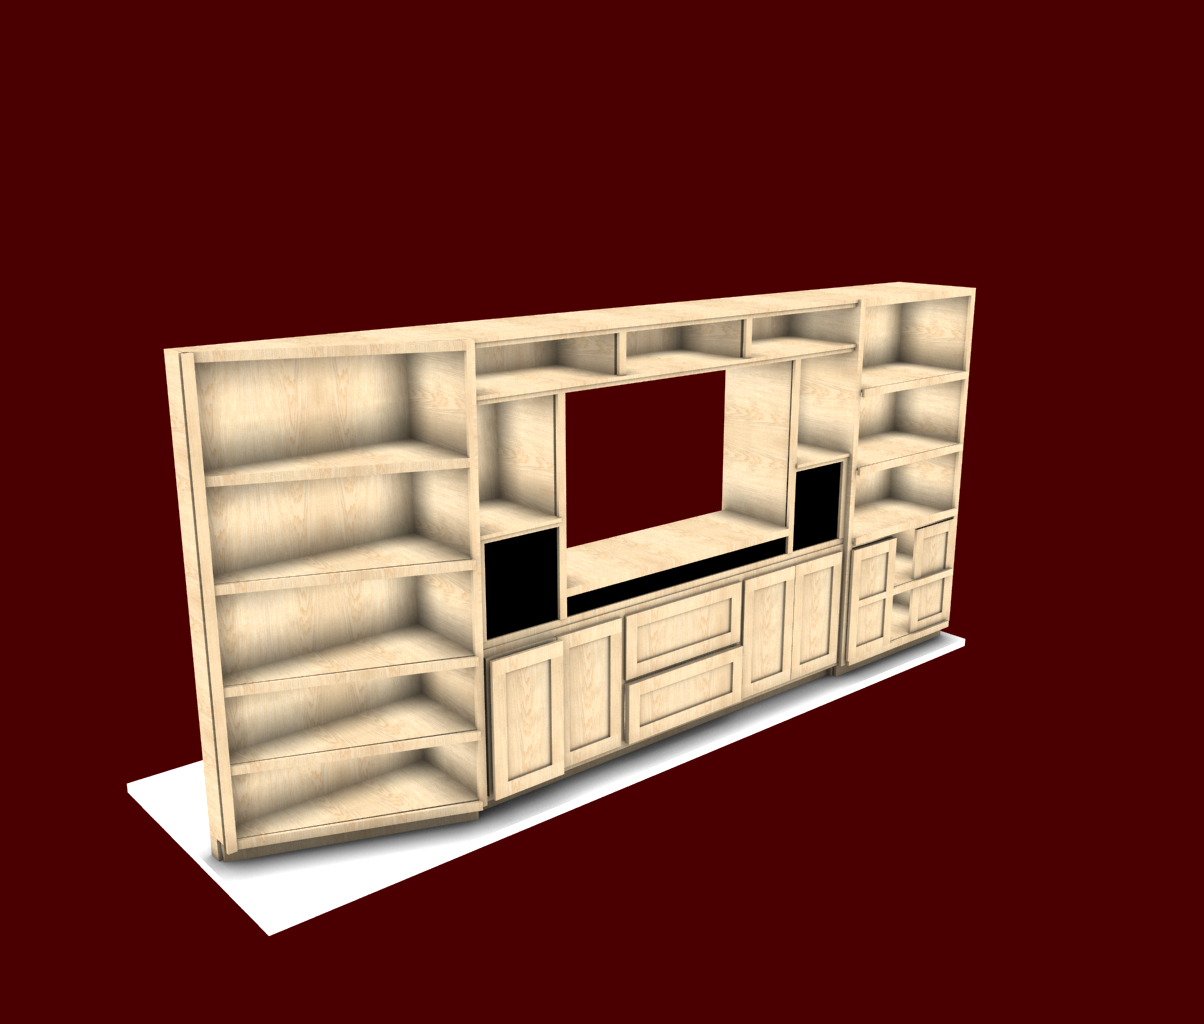 Free Kitchen Cabinets Design Software: KCT (KITCHENS CARPENTRY TRANSFORMATIONS